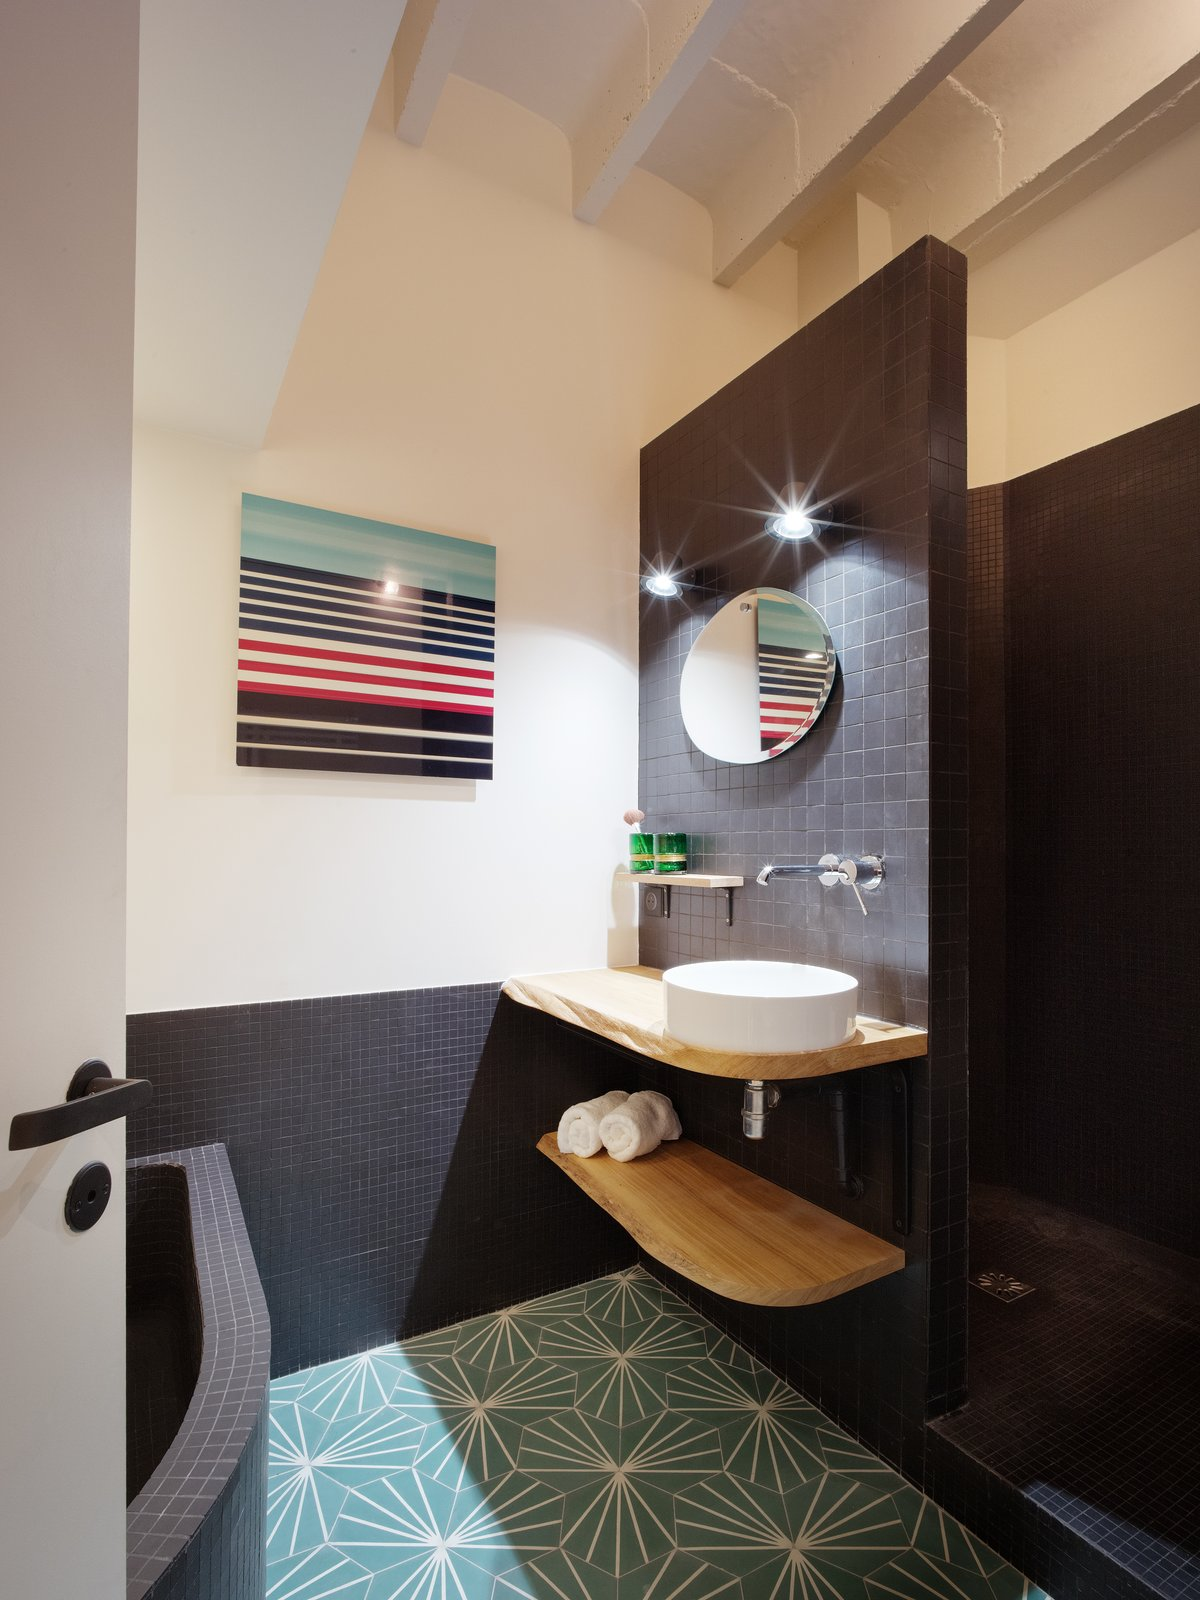 Bath, Wood, Mosaic Tile, Vessel, Drop In, Ceramic Tile, and Wall The simple bathroom was fitted with colored glass and black tiles, and accomodates a generous bathtub and shower.  Best Bath Wall Drop In Photos from This Compact Home in Paris Has Nearly 70 Concealed Closets